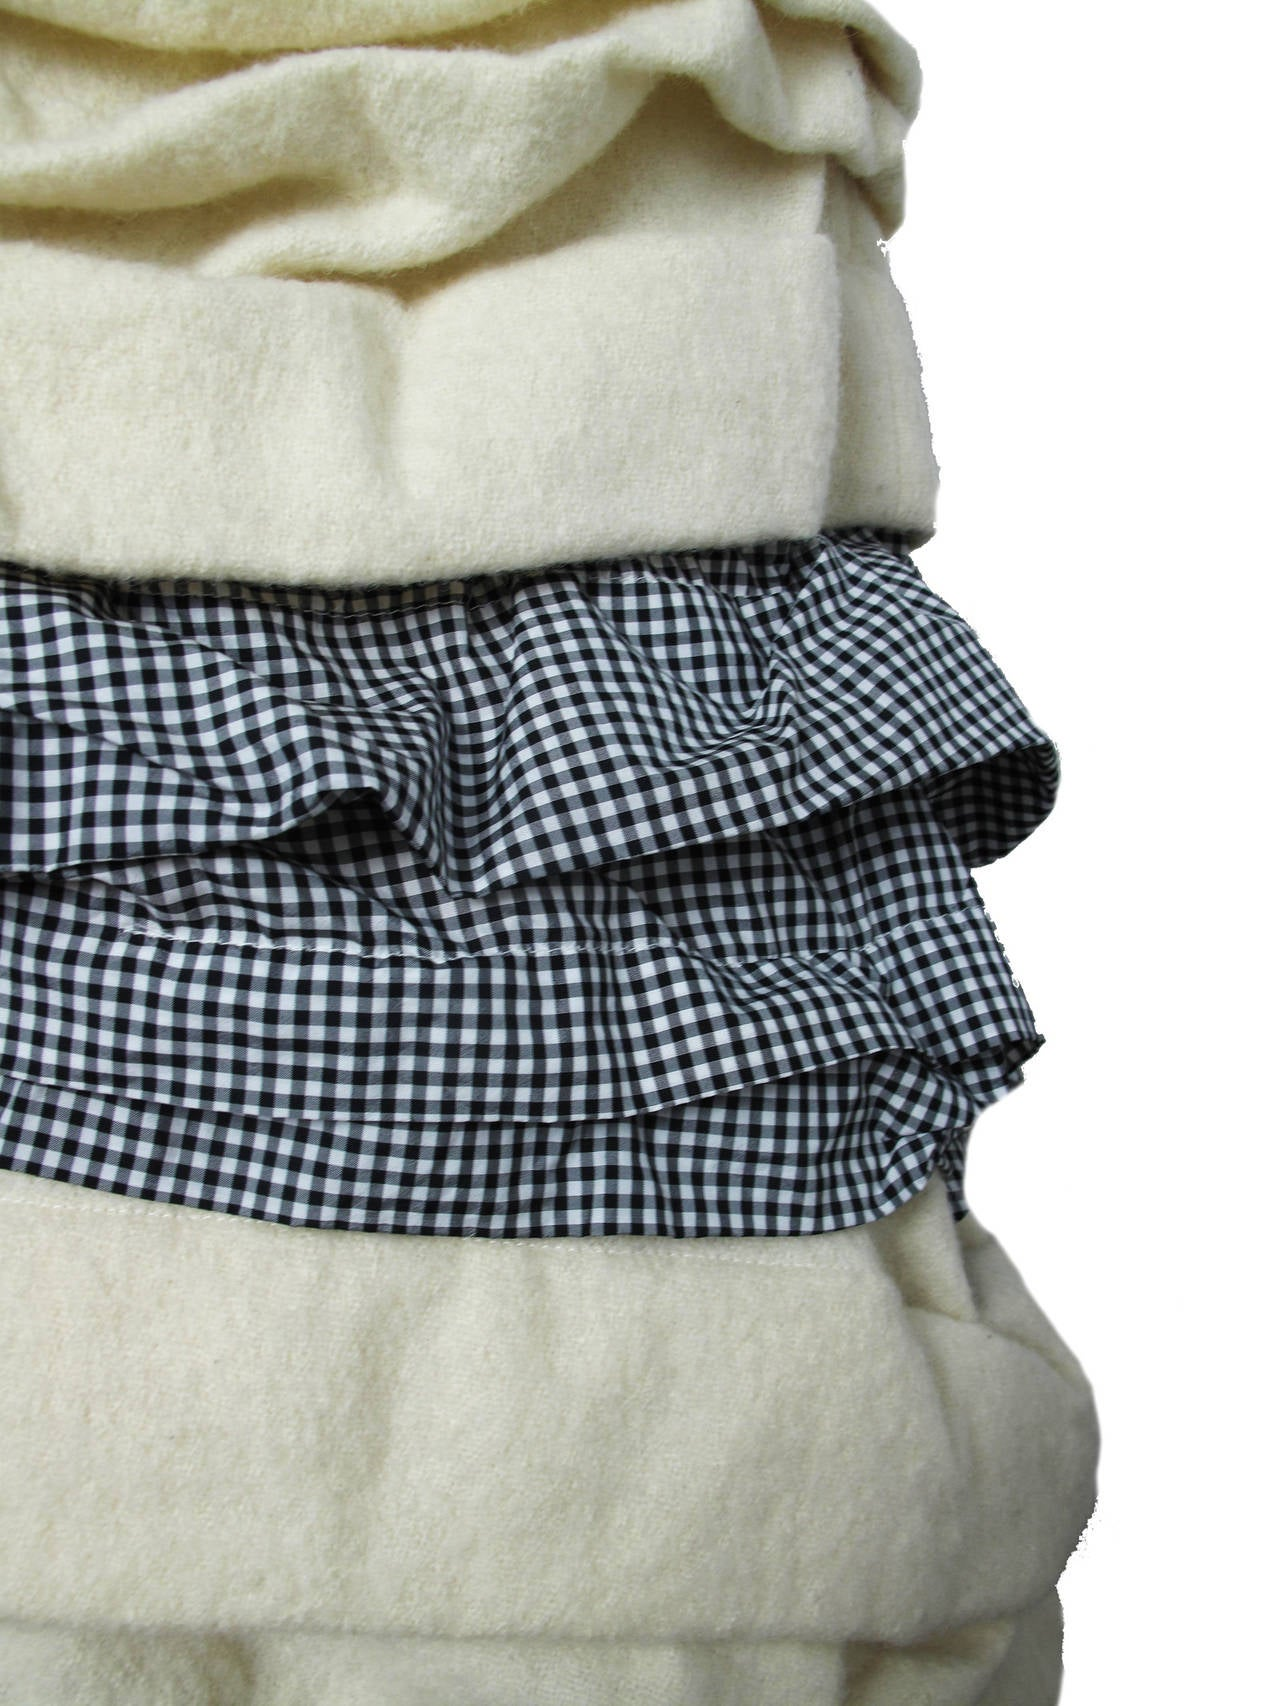 Women's Comme des Garcons Ruffle Skirt with Gingham  For Sale